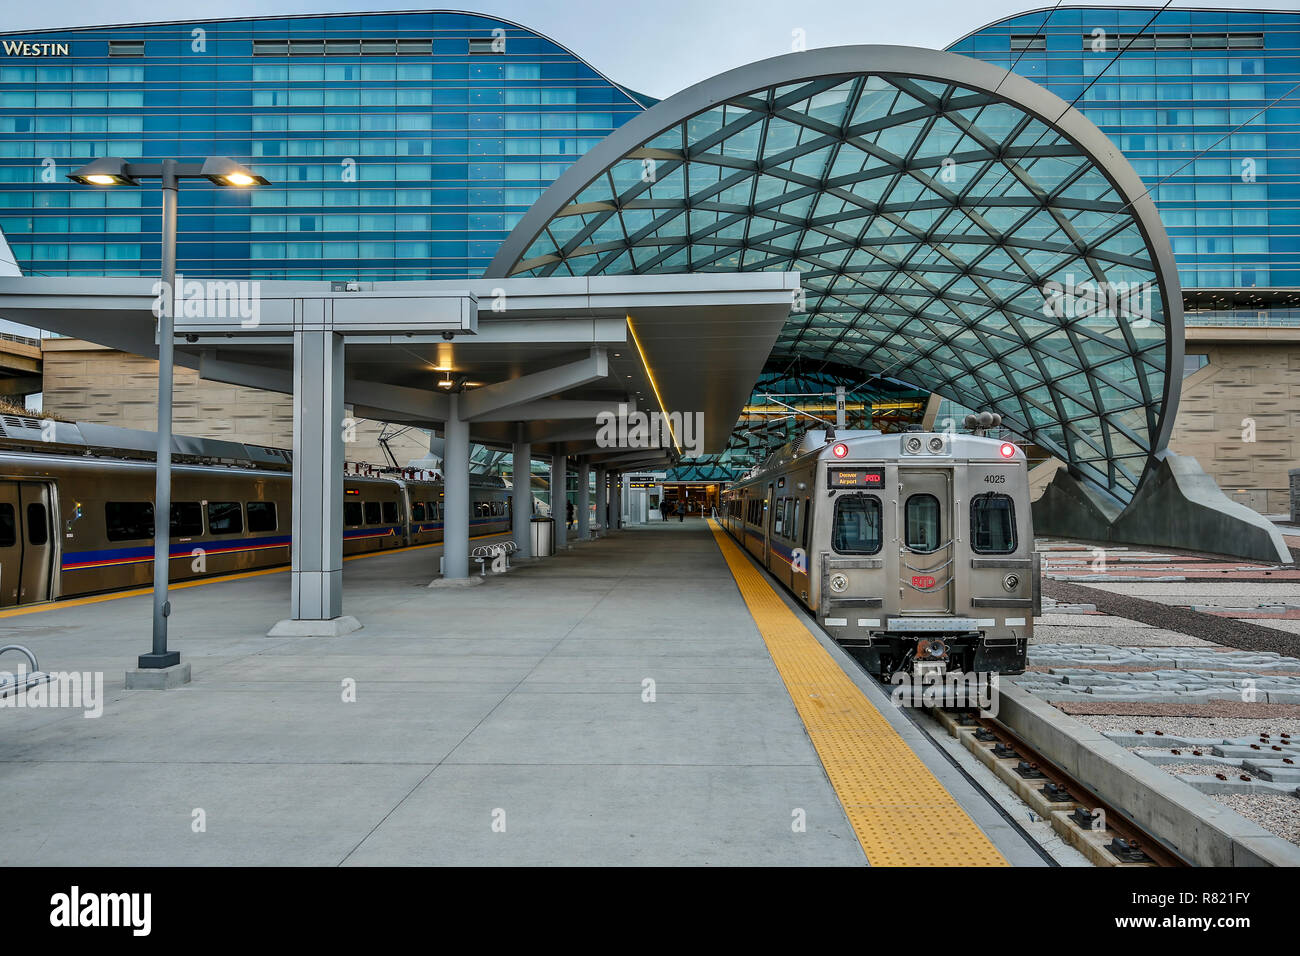 Denver International Airport Train Station and Westin Denver International Hotel,  Denver International Airport (DIA), Denver, Colorado USA - Stock Image